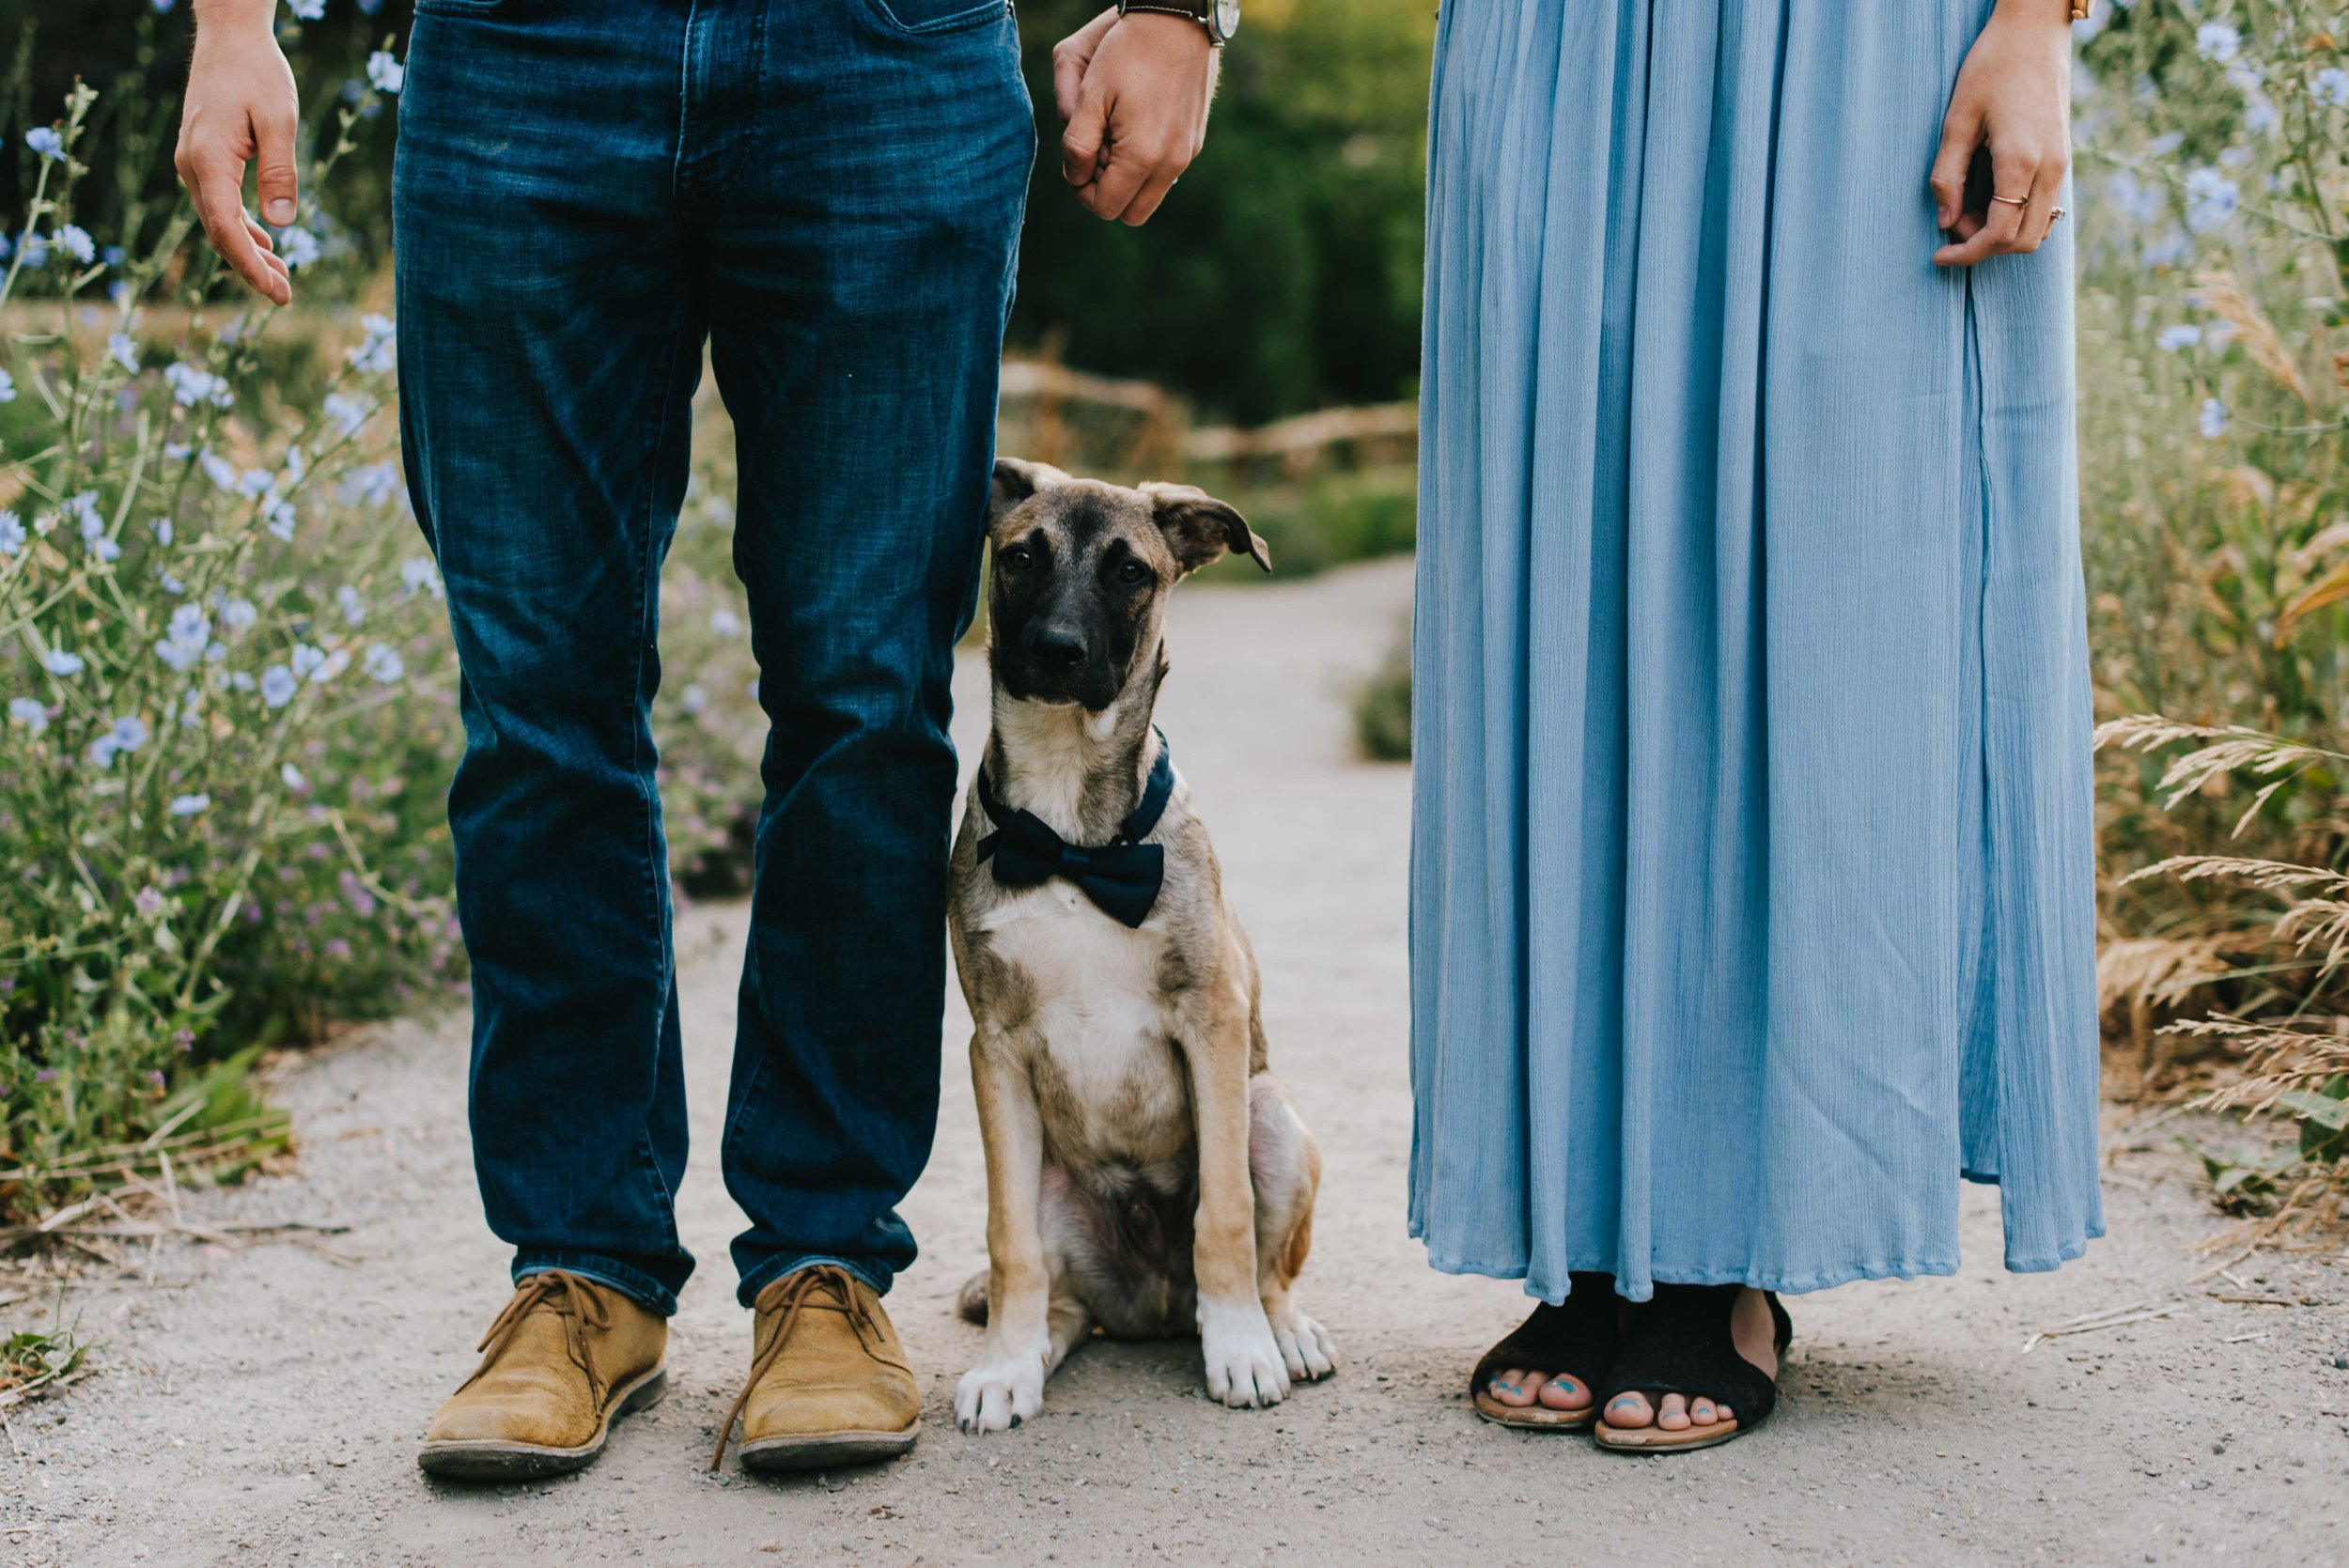 Betsy, Connor and their adorable puppy Teddy during their Mount Sanitas engagement session!